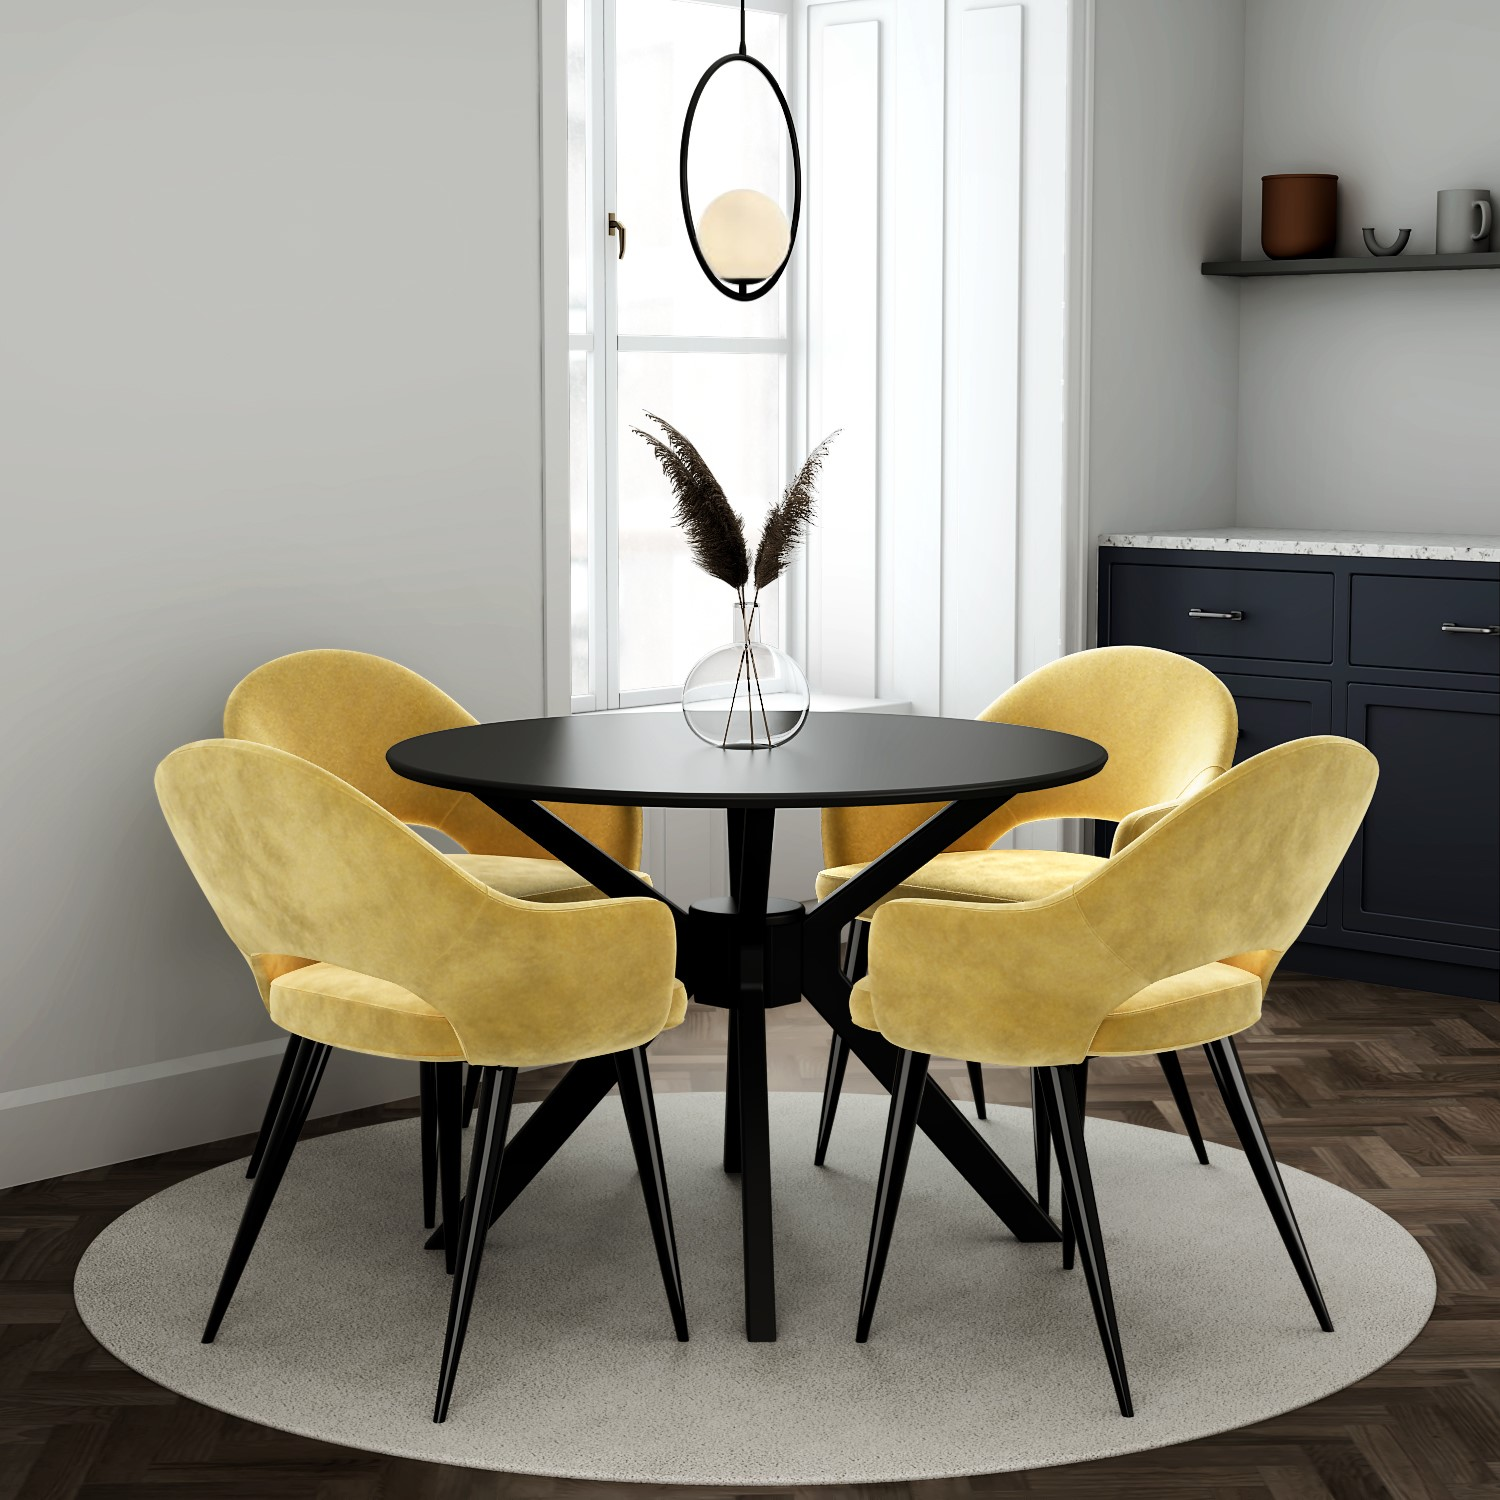 Black Round Dining Table With 4 Mustard, Round Kitchen Tables And Chairs Uk